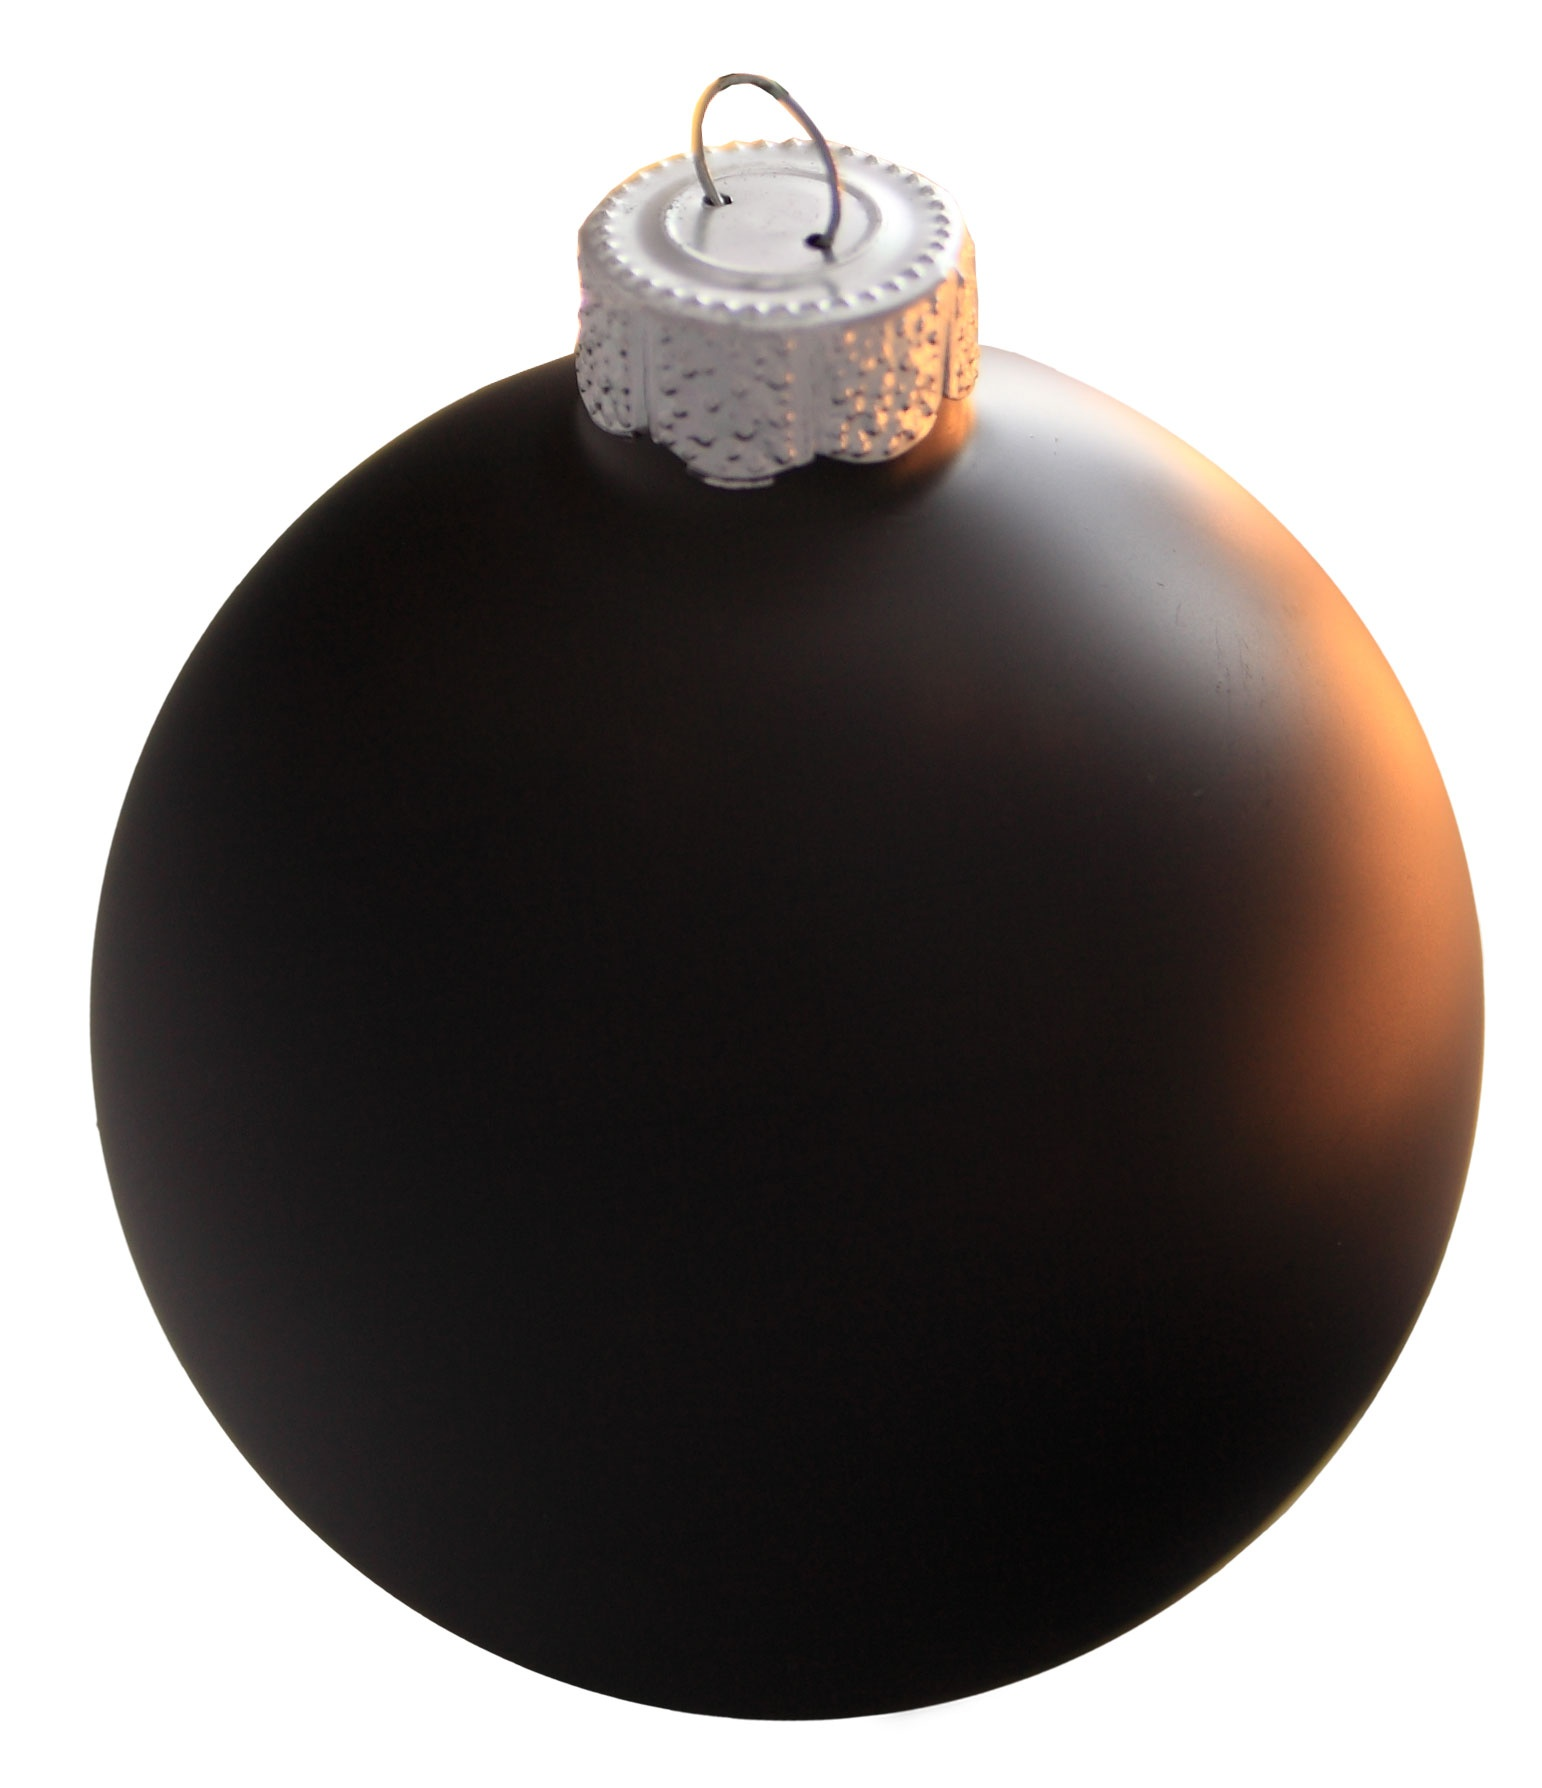 black glass ball christmas ornament - Christmas Ball Decorations